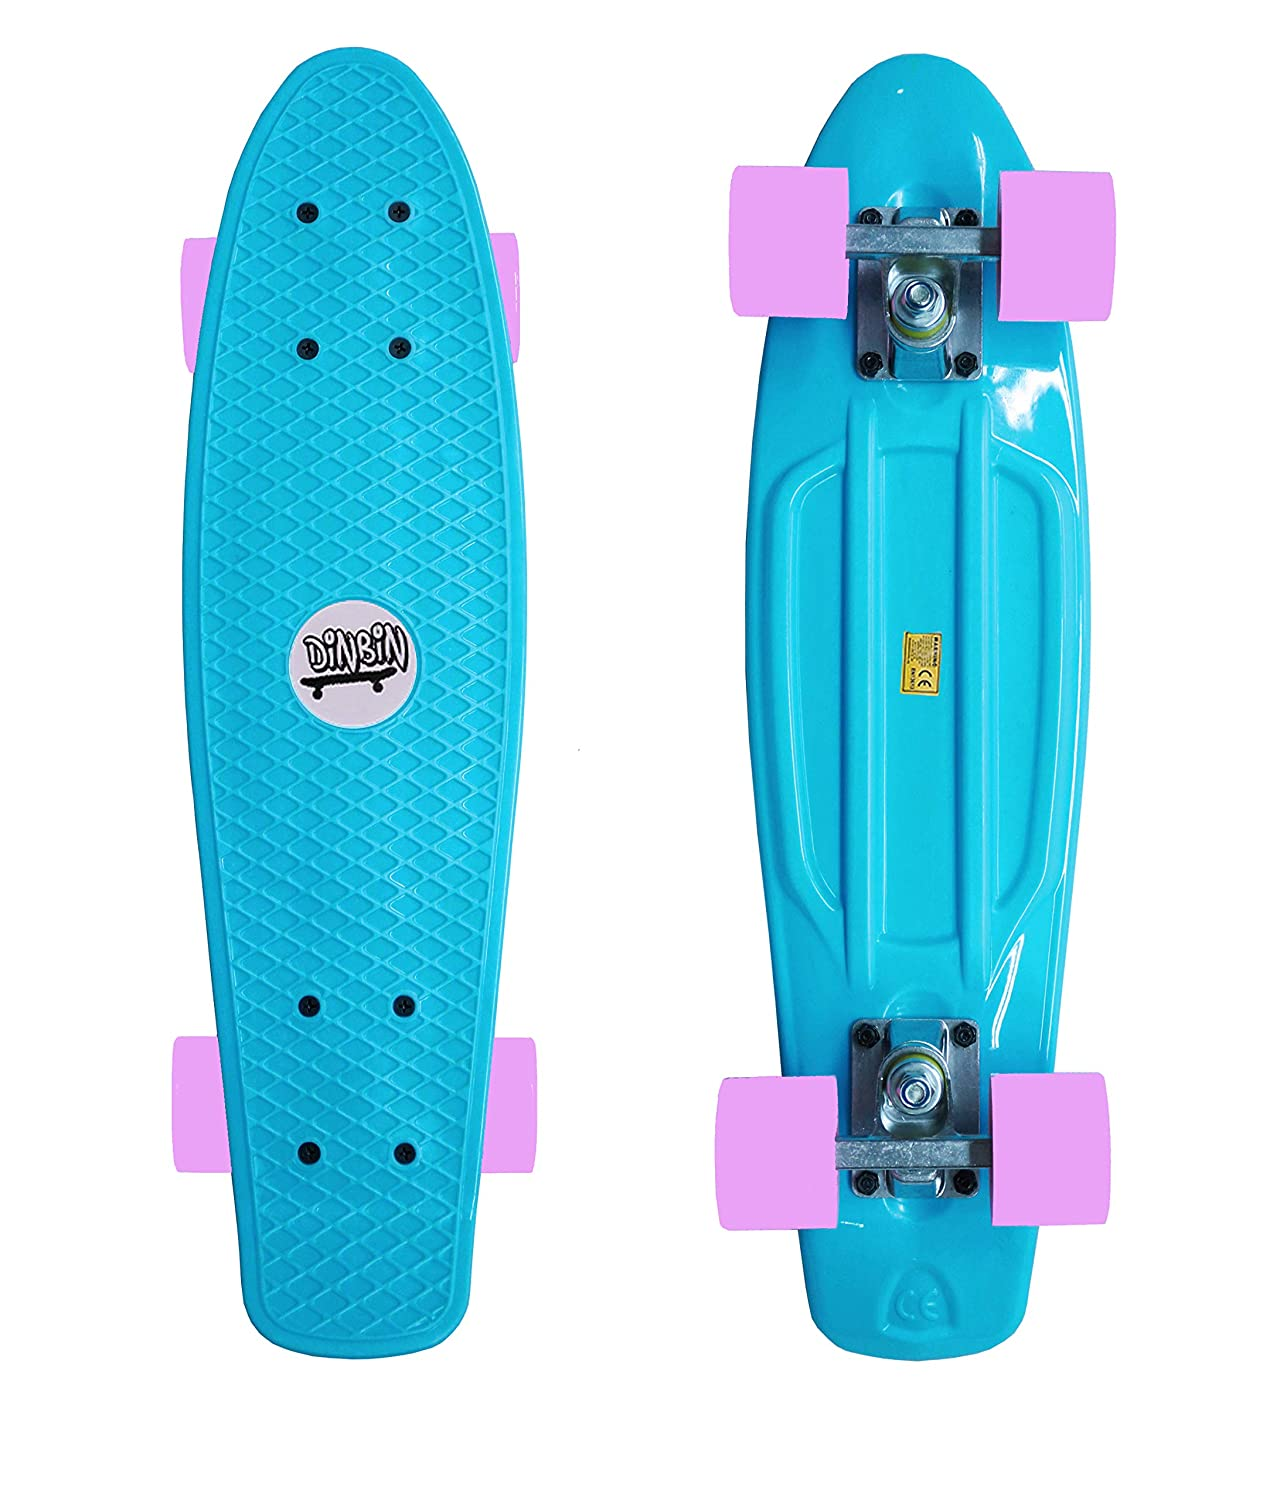 DINBIN NBIN Complete Highly Flexible Plastic Cruiser Board Mini 22 Inch Skateboards for Beginners or Professional with High Rebound PU Wheels